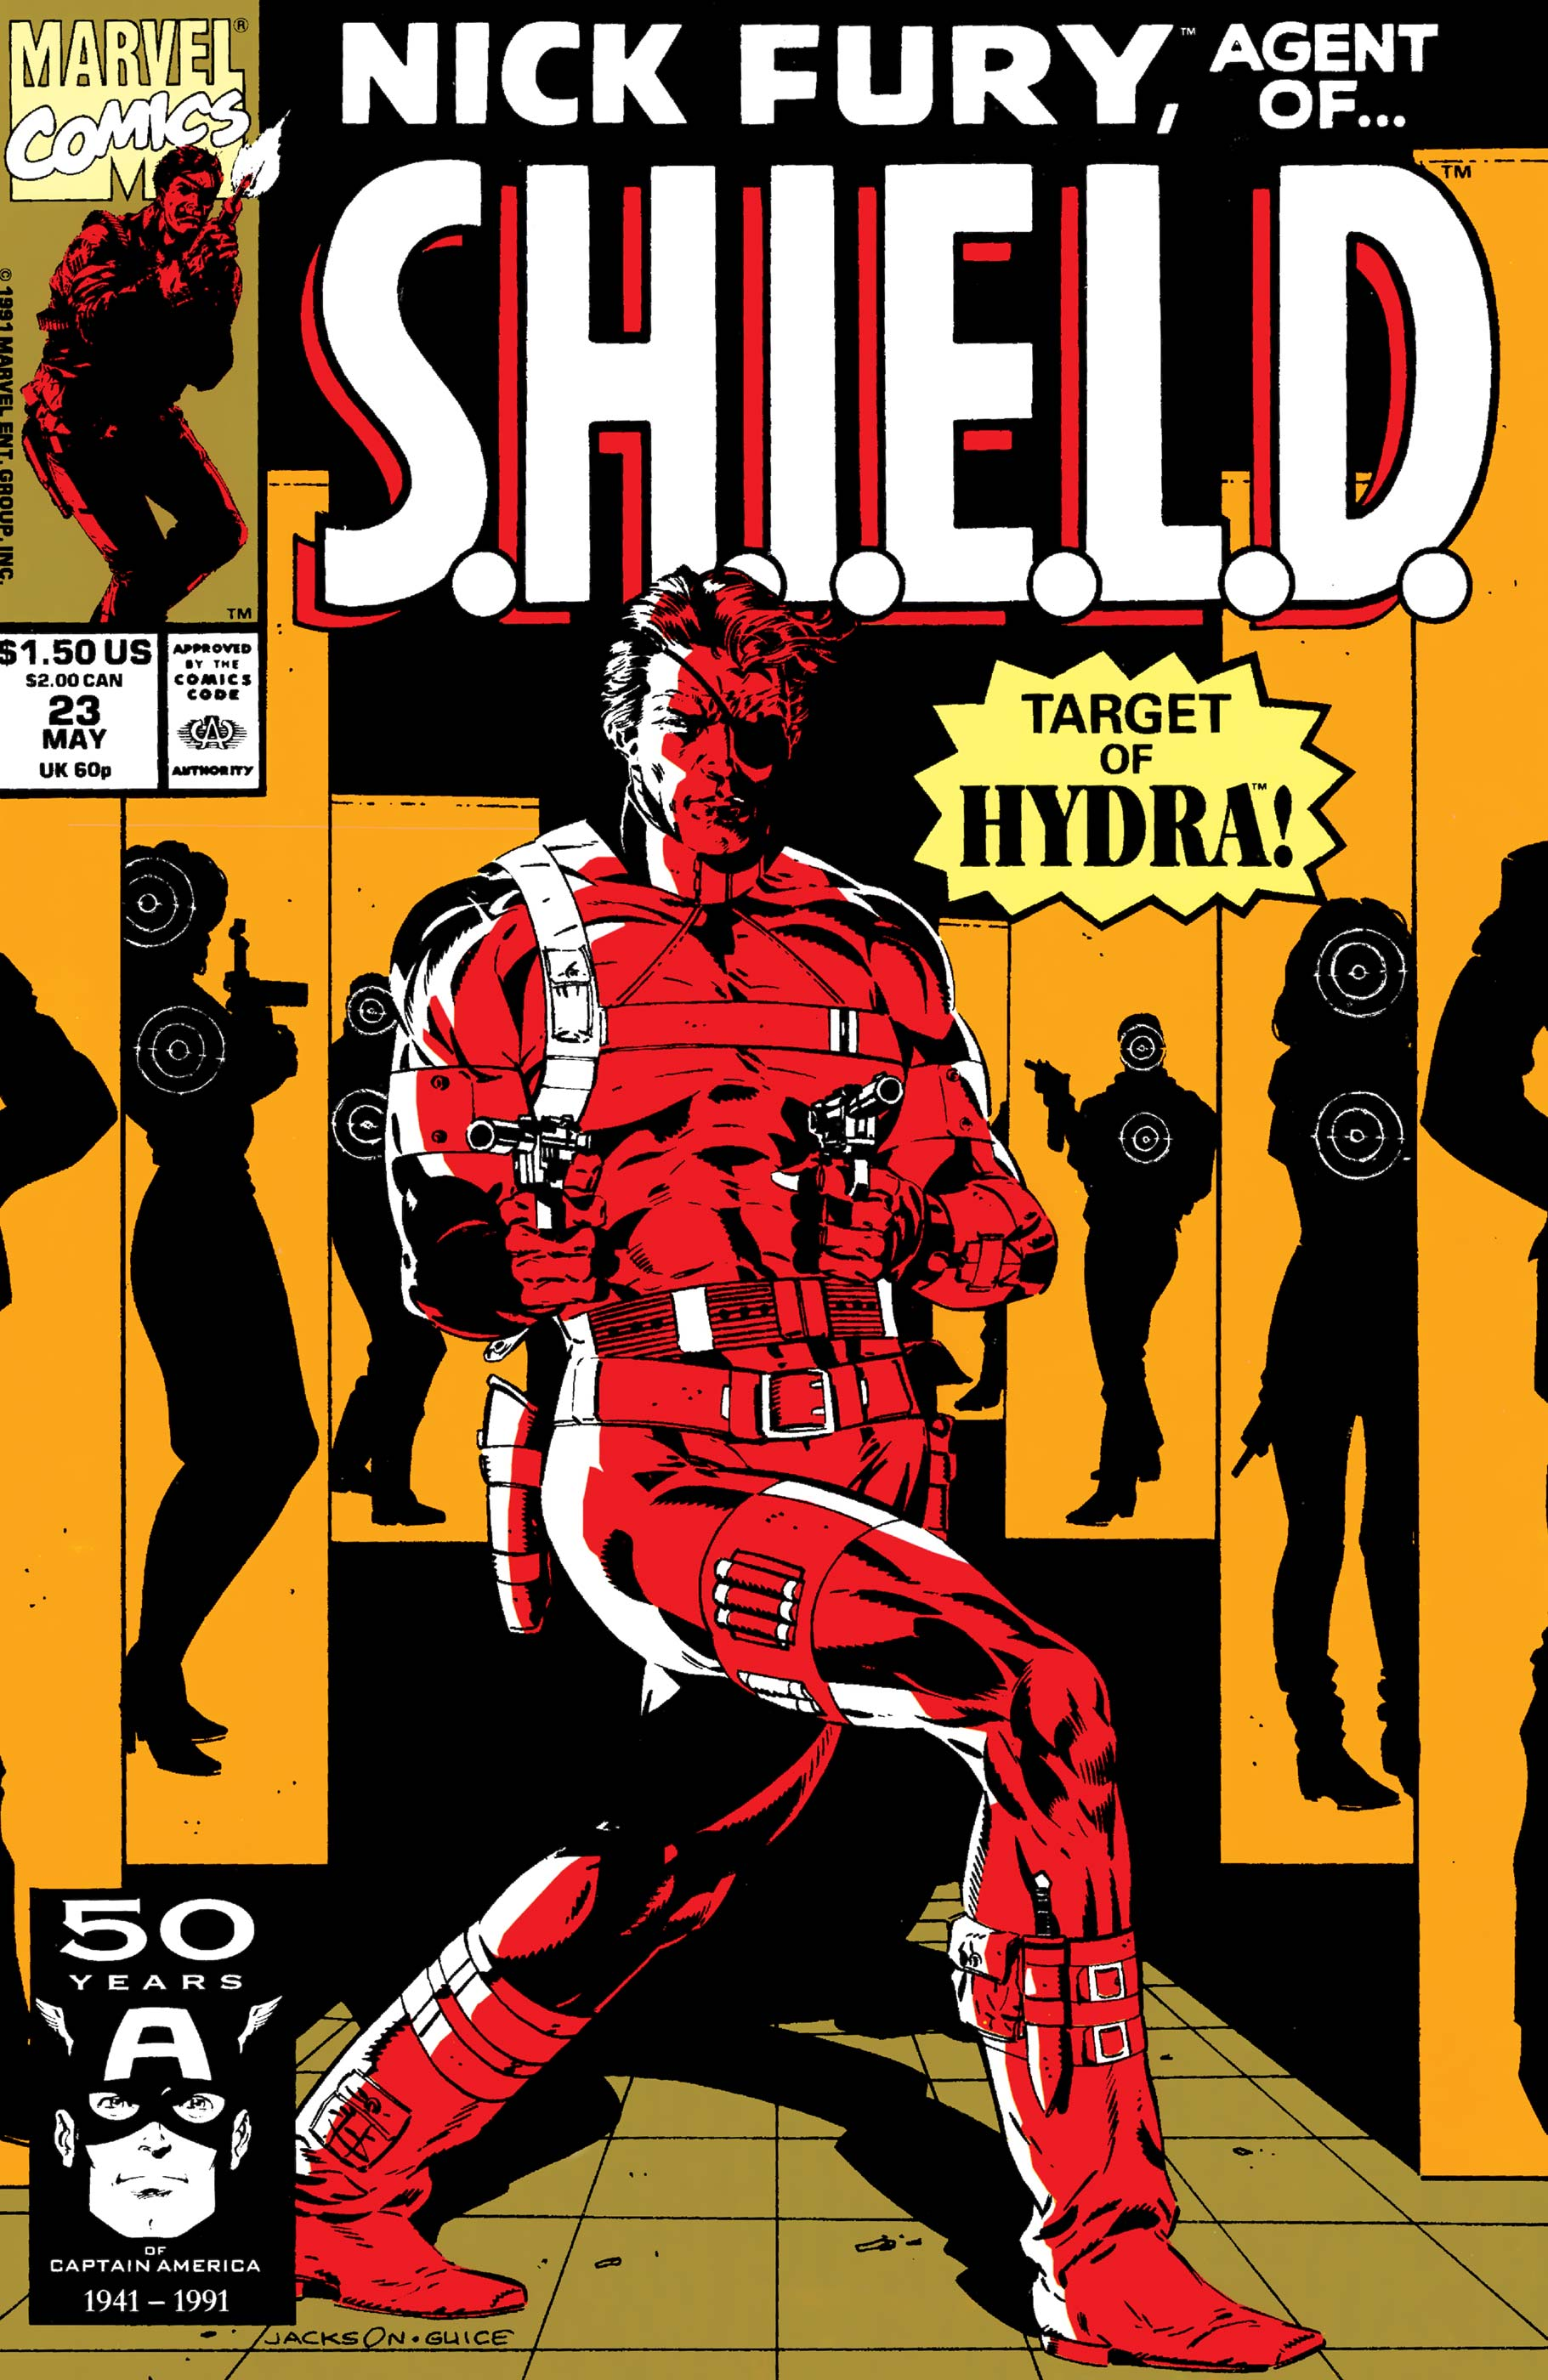 Nick Fury, Agent of S.H.I.E.L.D. (1989) #23